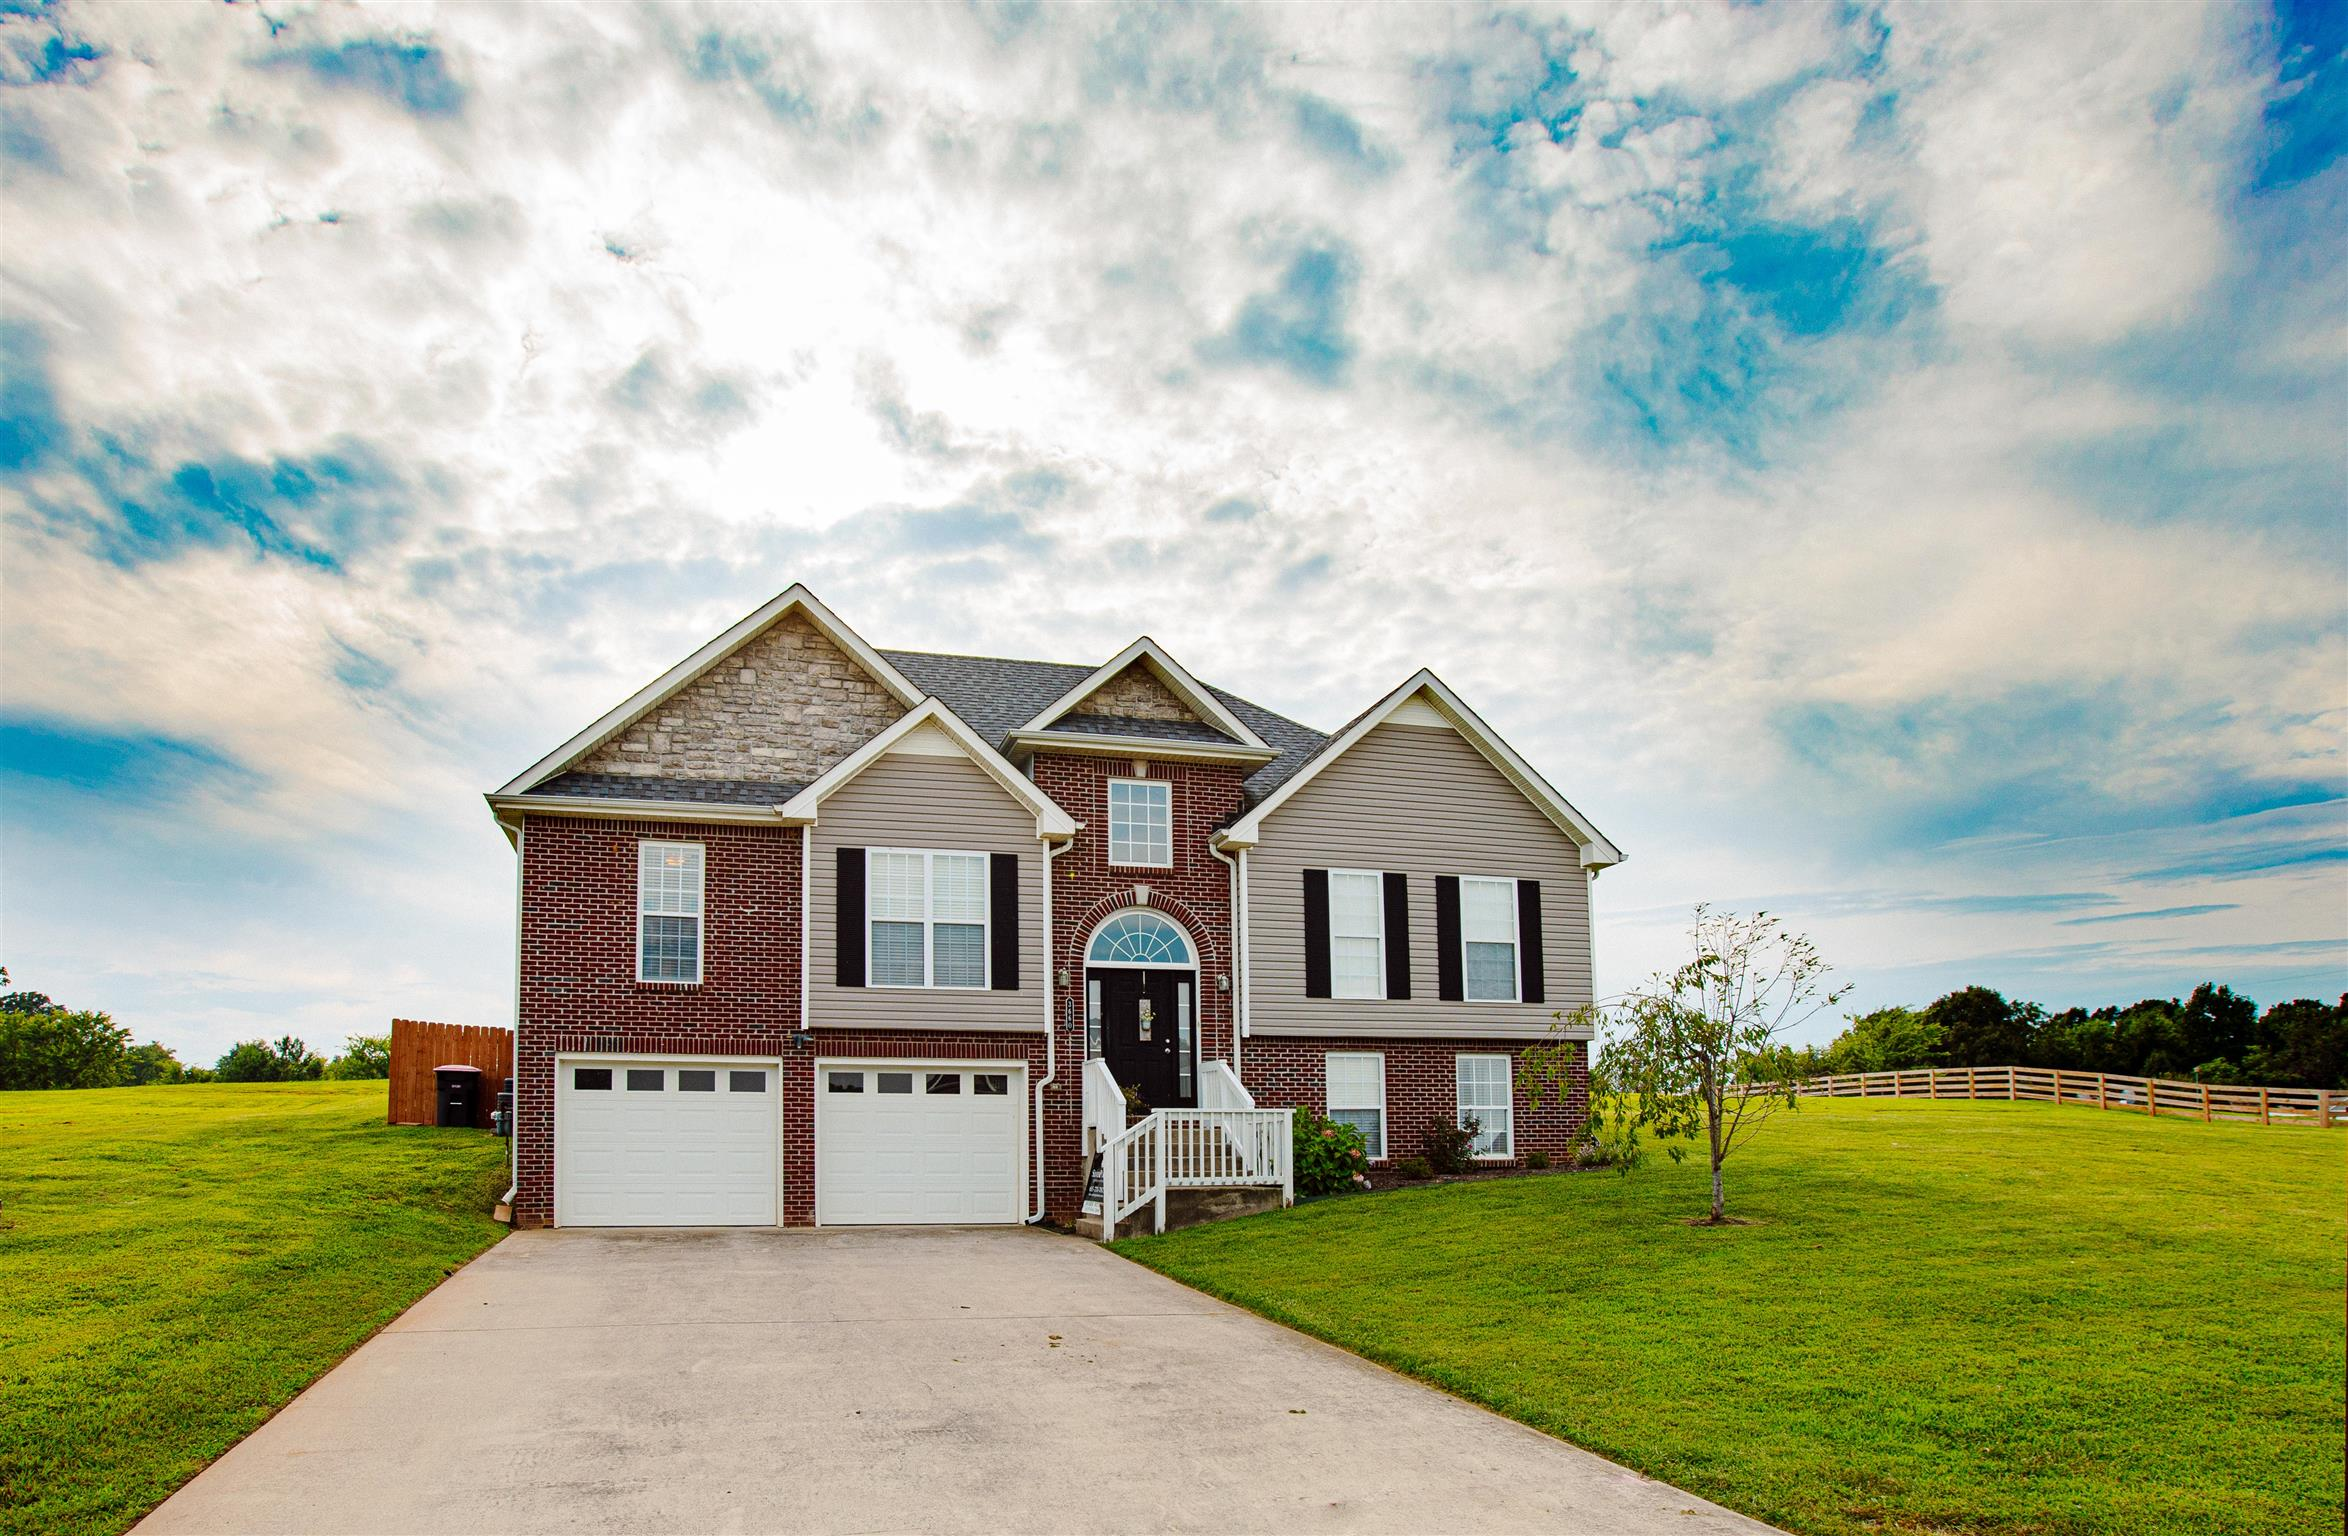 3660 Blackford Hills Rd, Cunningham, TN 37052 - Cunningham, TN real estate listing